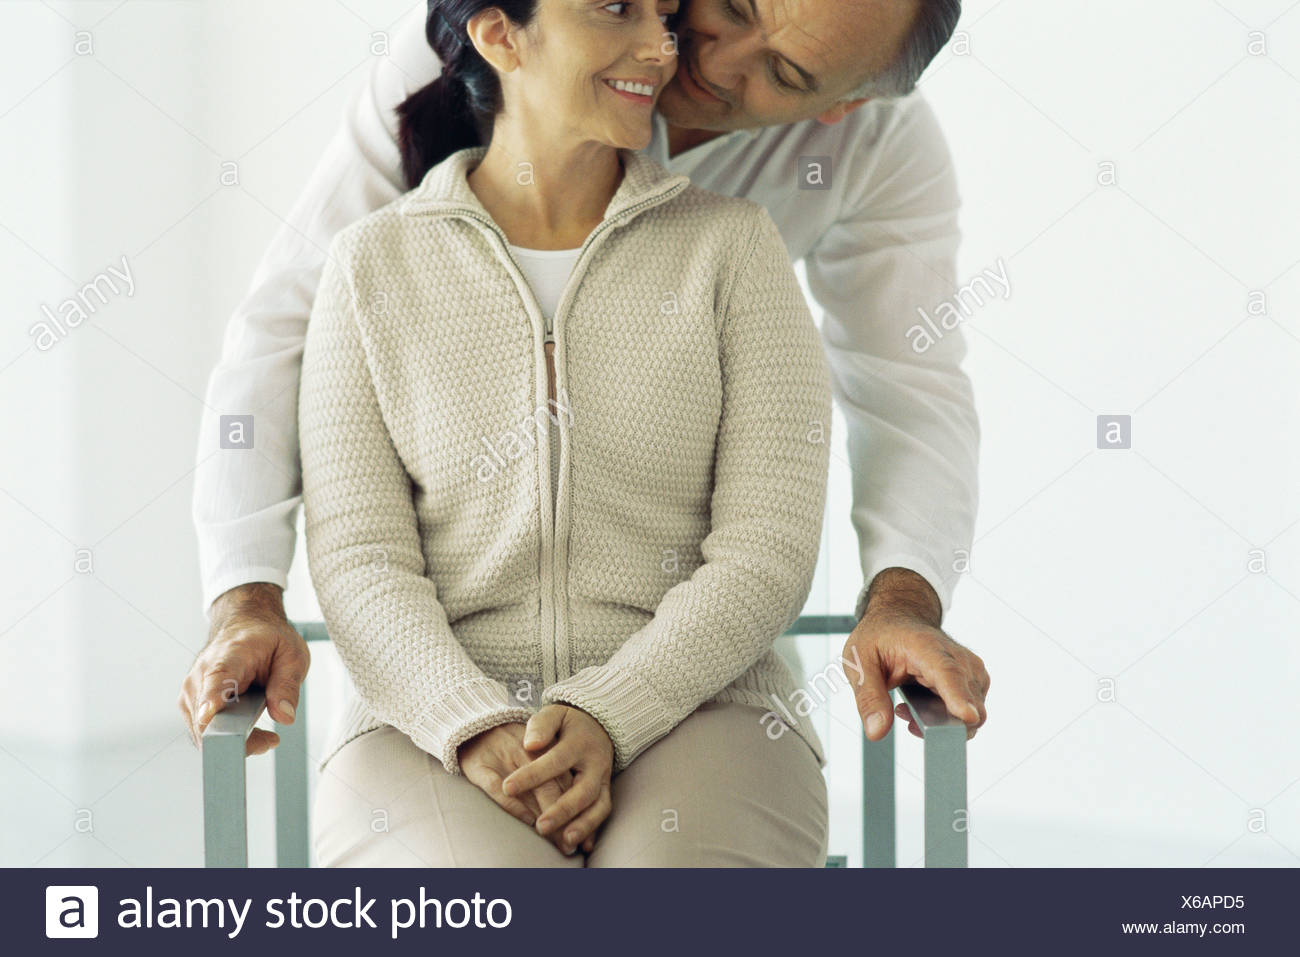 Woman sitting in chair, husband standing behind leaning down whispering in her ear, front view - Stock Image